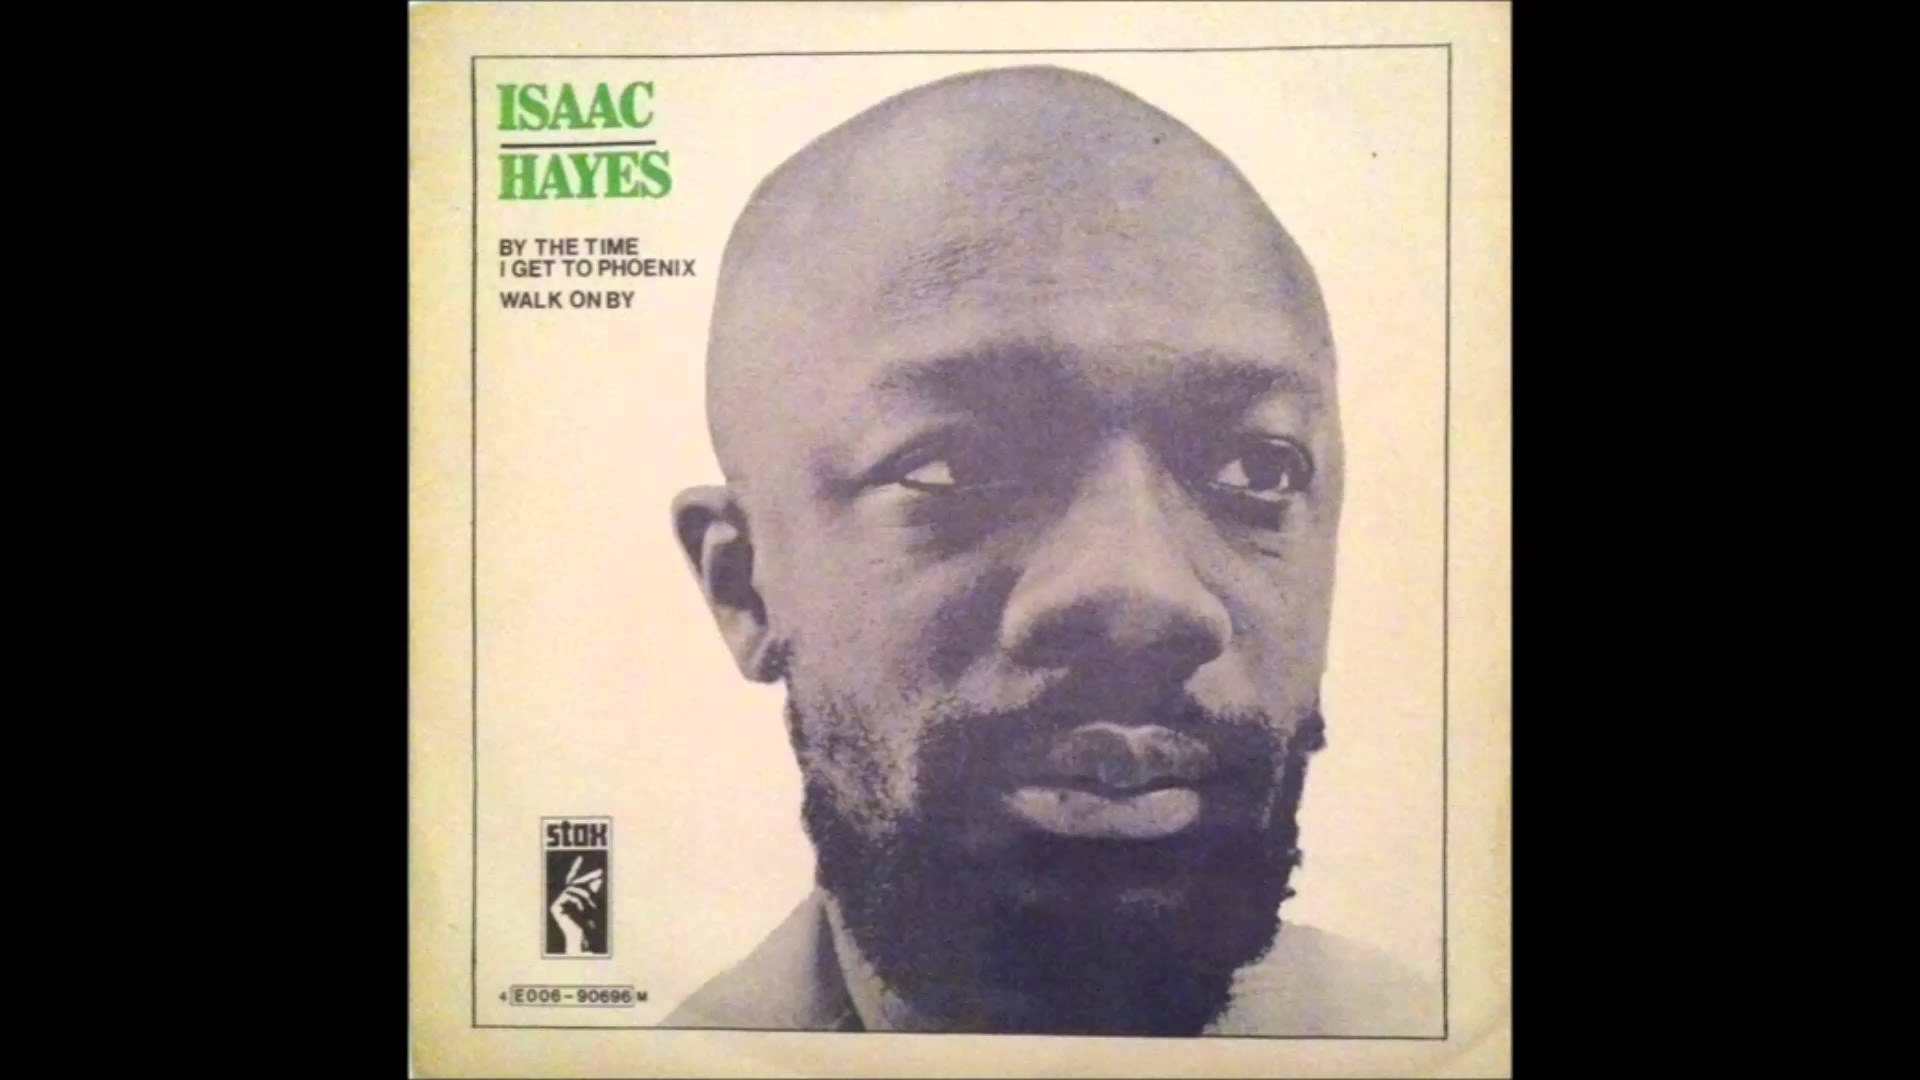 Isaac Hayes - Walk On By (Extended Version)